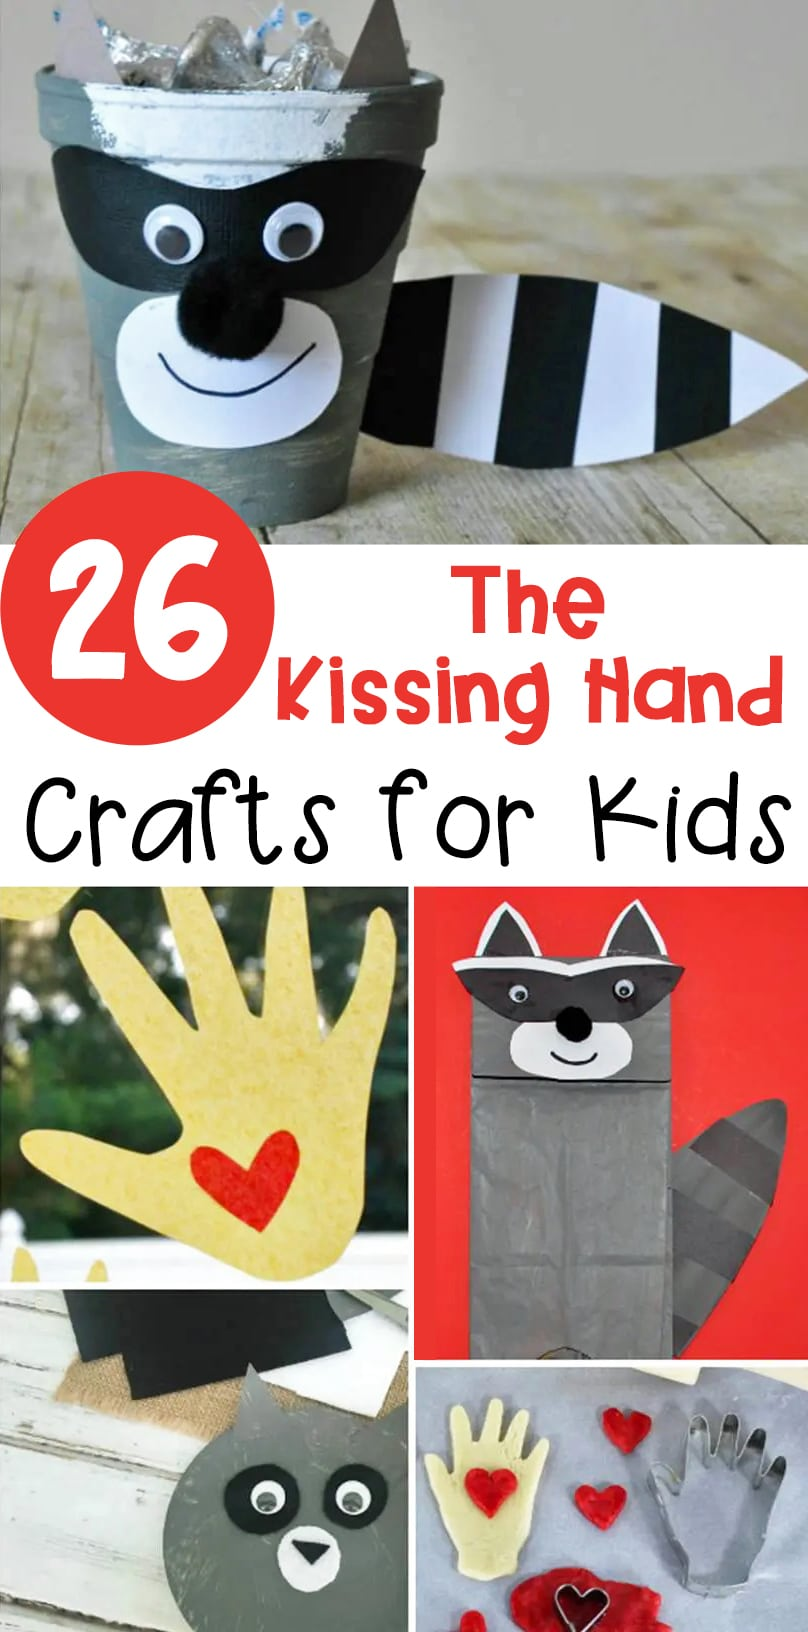 If you love reading The Kissing Hand, you will love these Kissing Hand crafts to try this Back to School season with your kids!